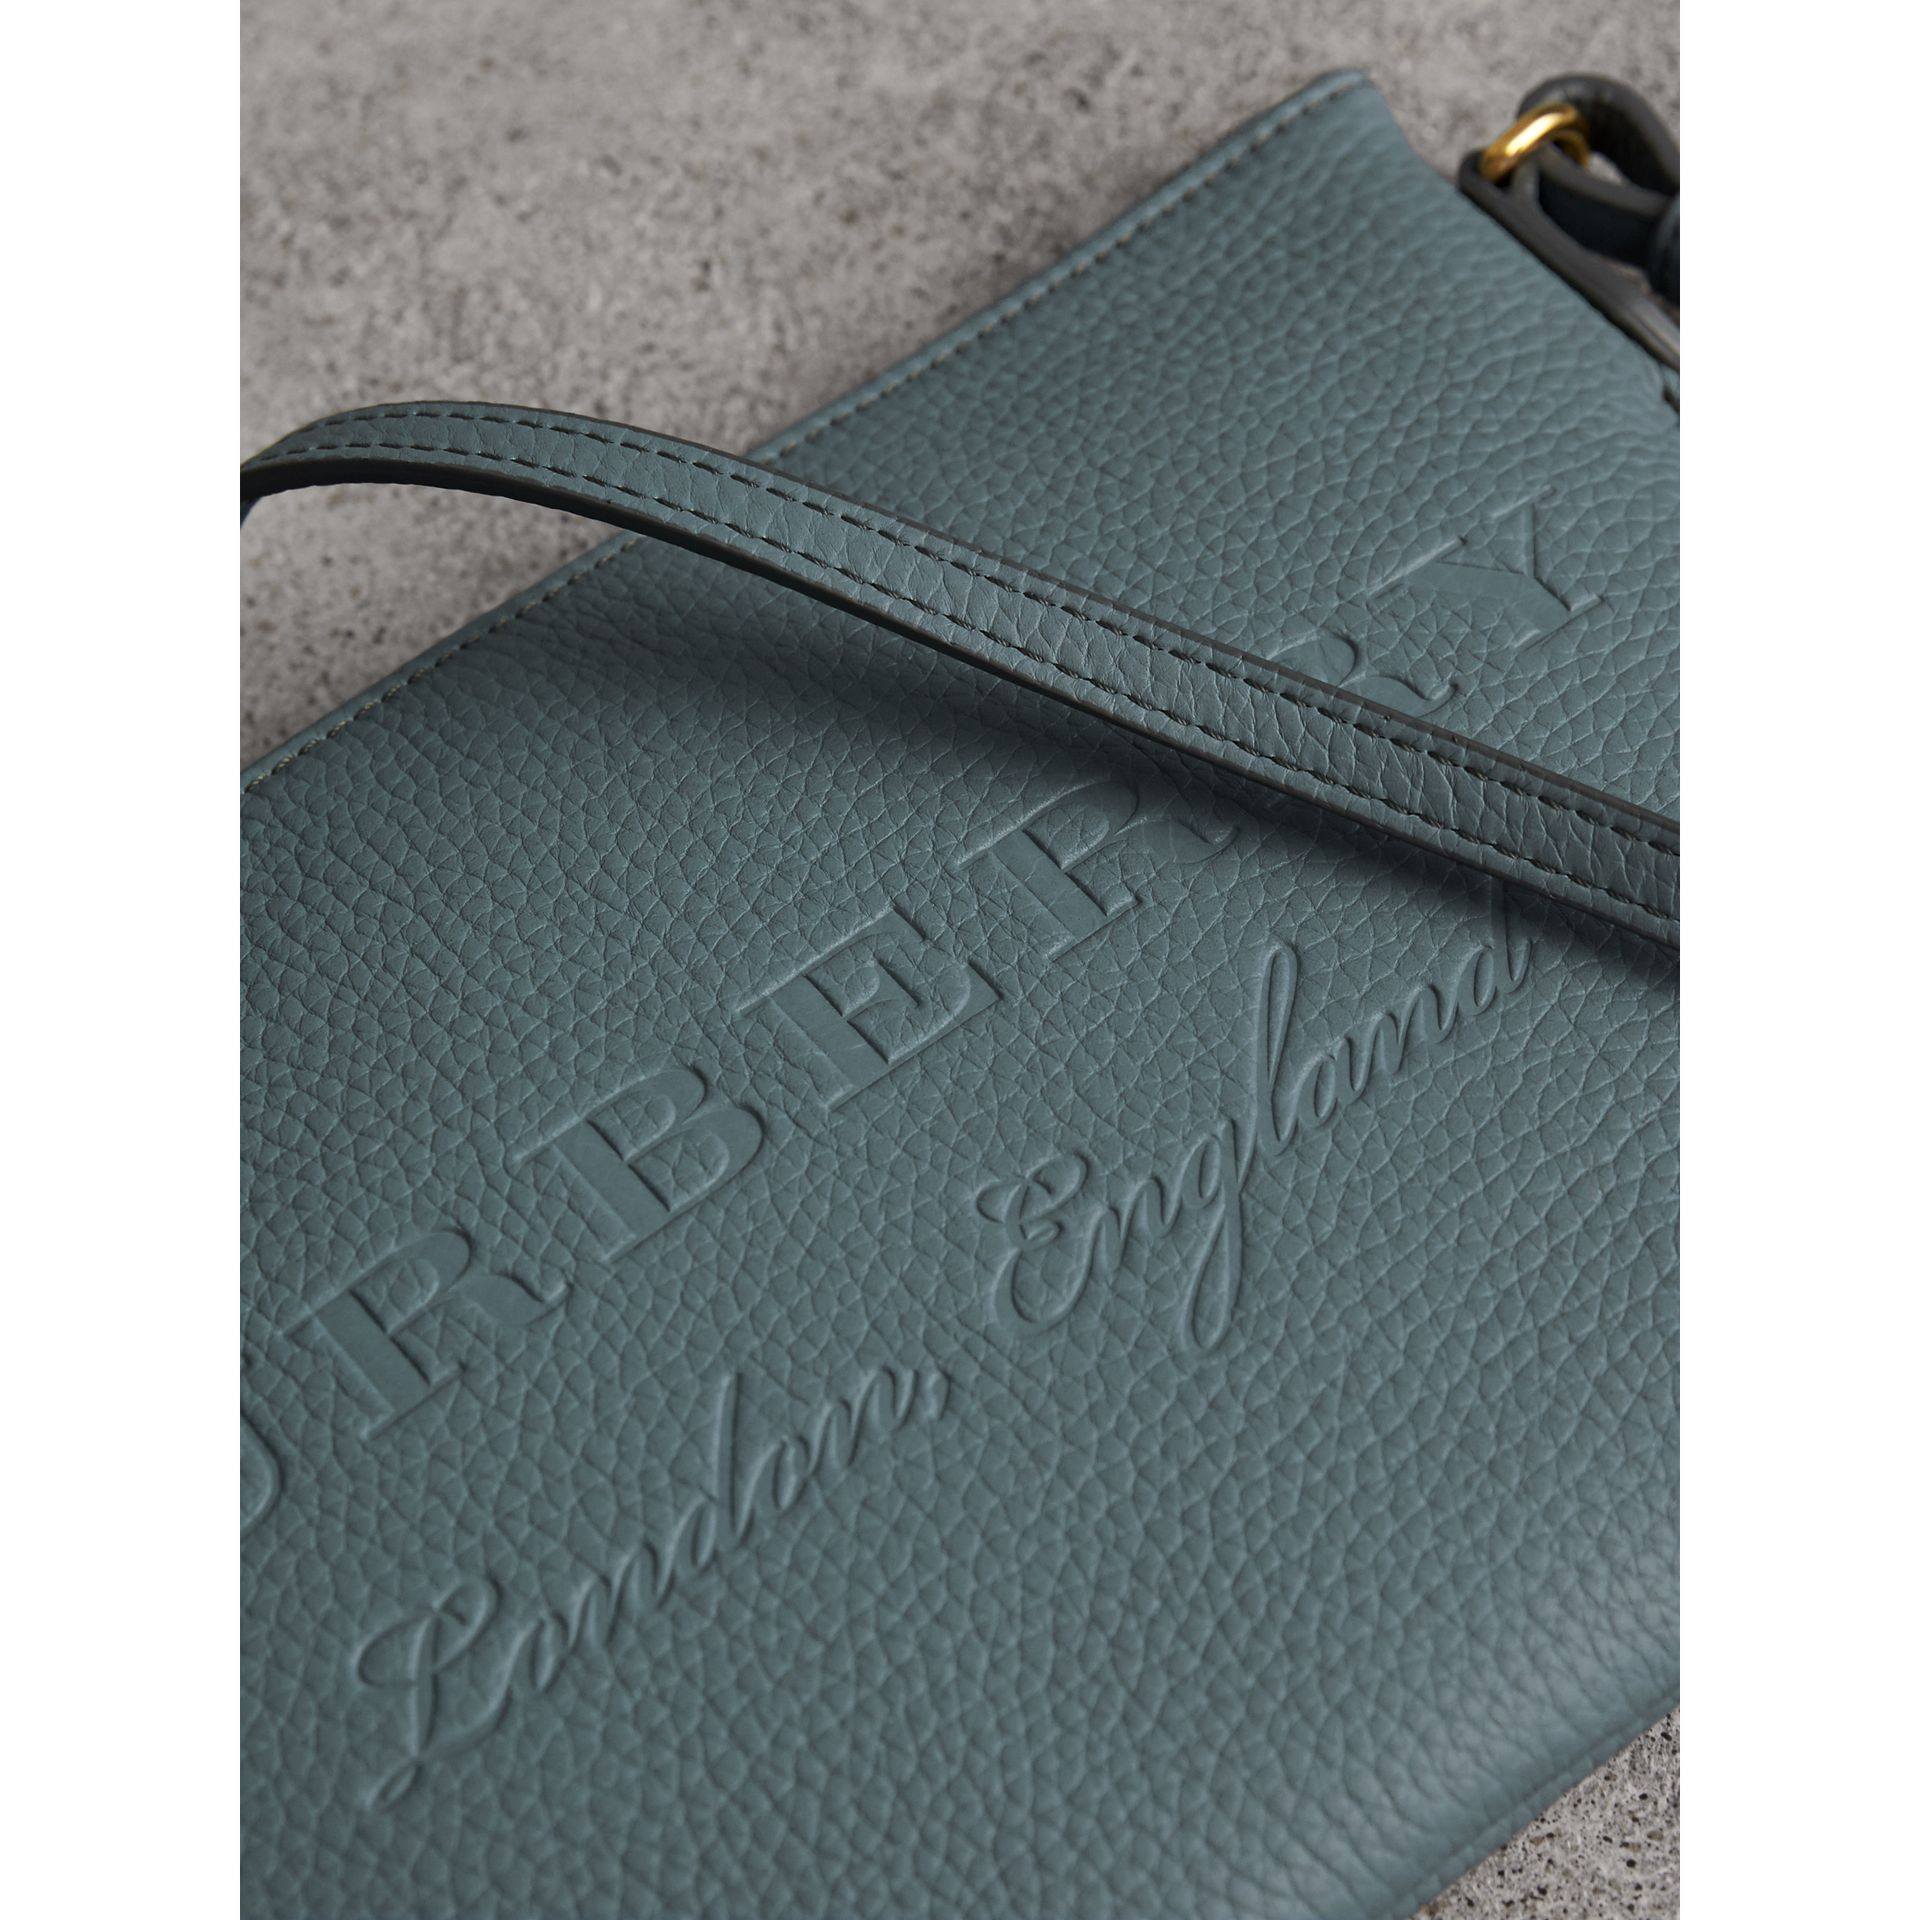 Embossed Leather Clutch Bag in Dusty Teal Blue - Women | Burberry - gallery image 2